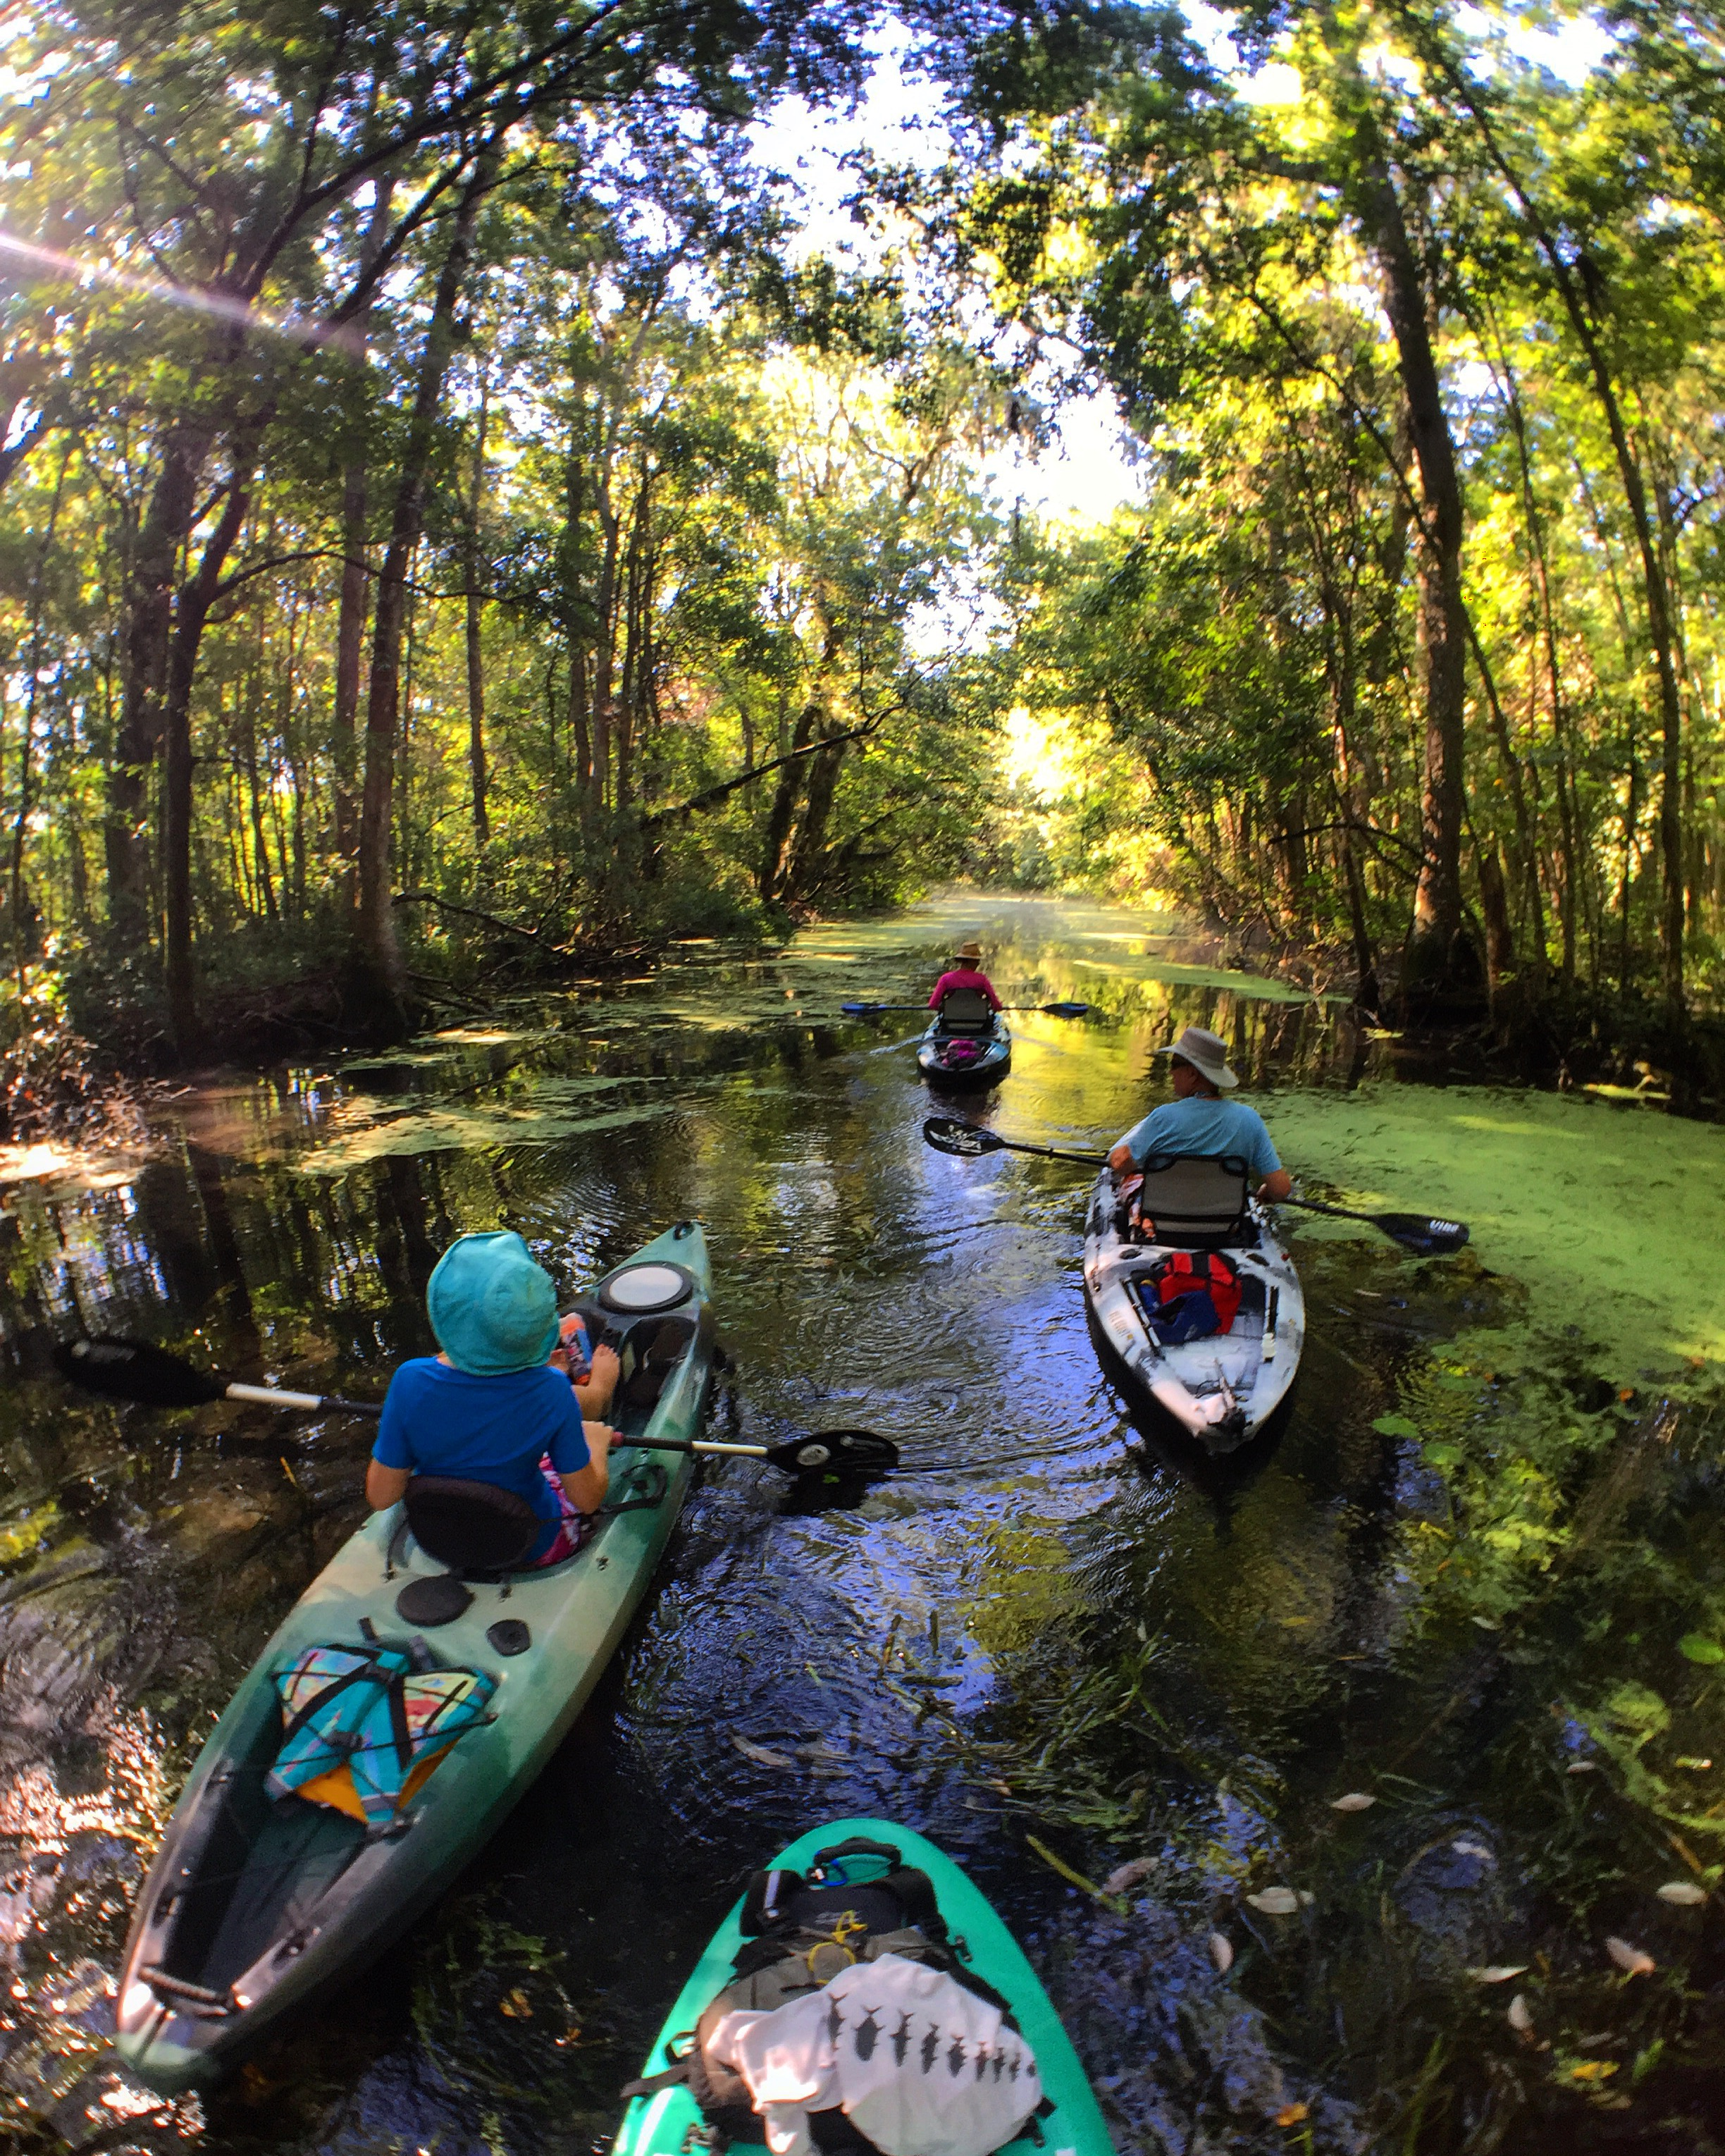 Group of kayakers paddling under a beautiful tree canopy while on an eco-tour.